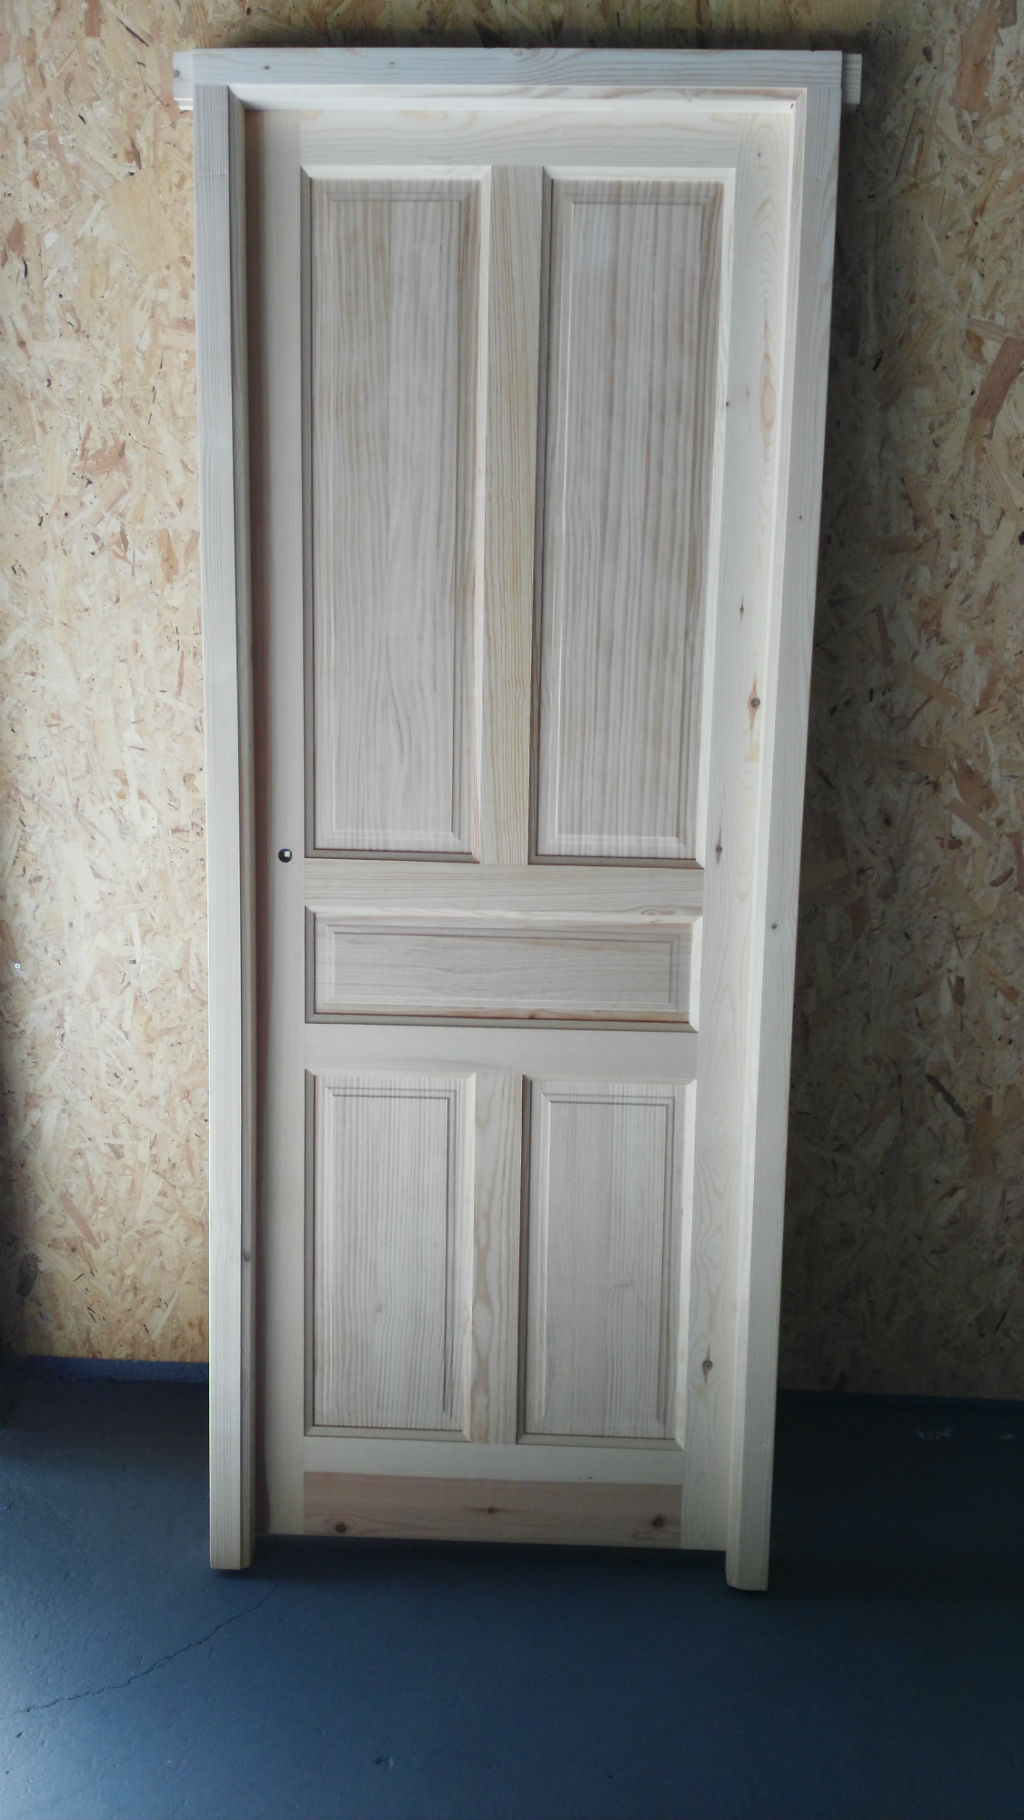 Puertas rusticas de madera pictures to pin on pinterest for Estanterias rusticas de madera